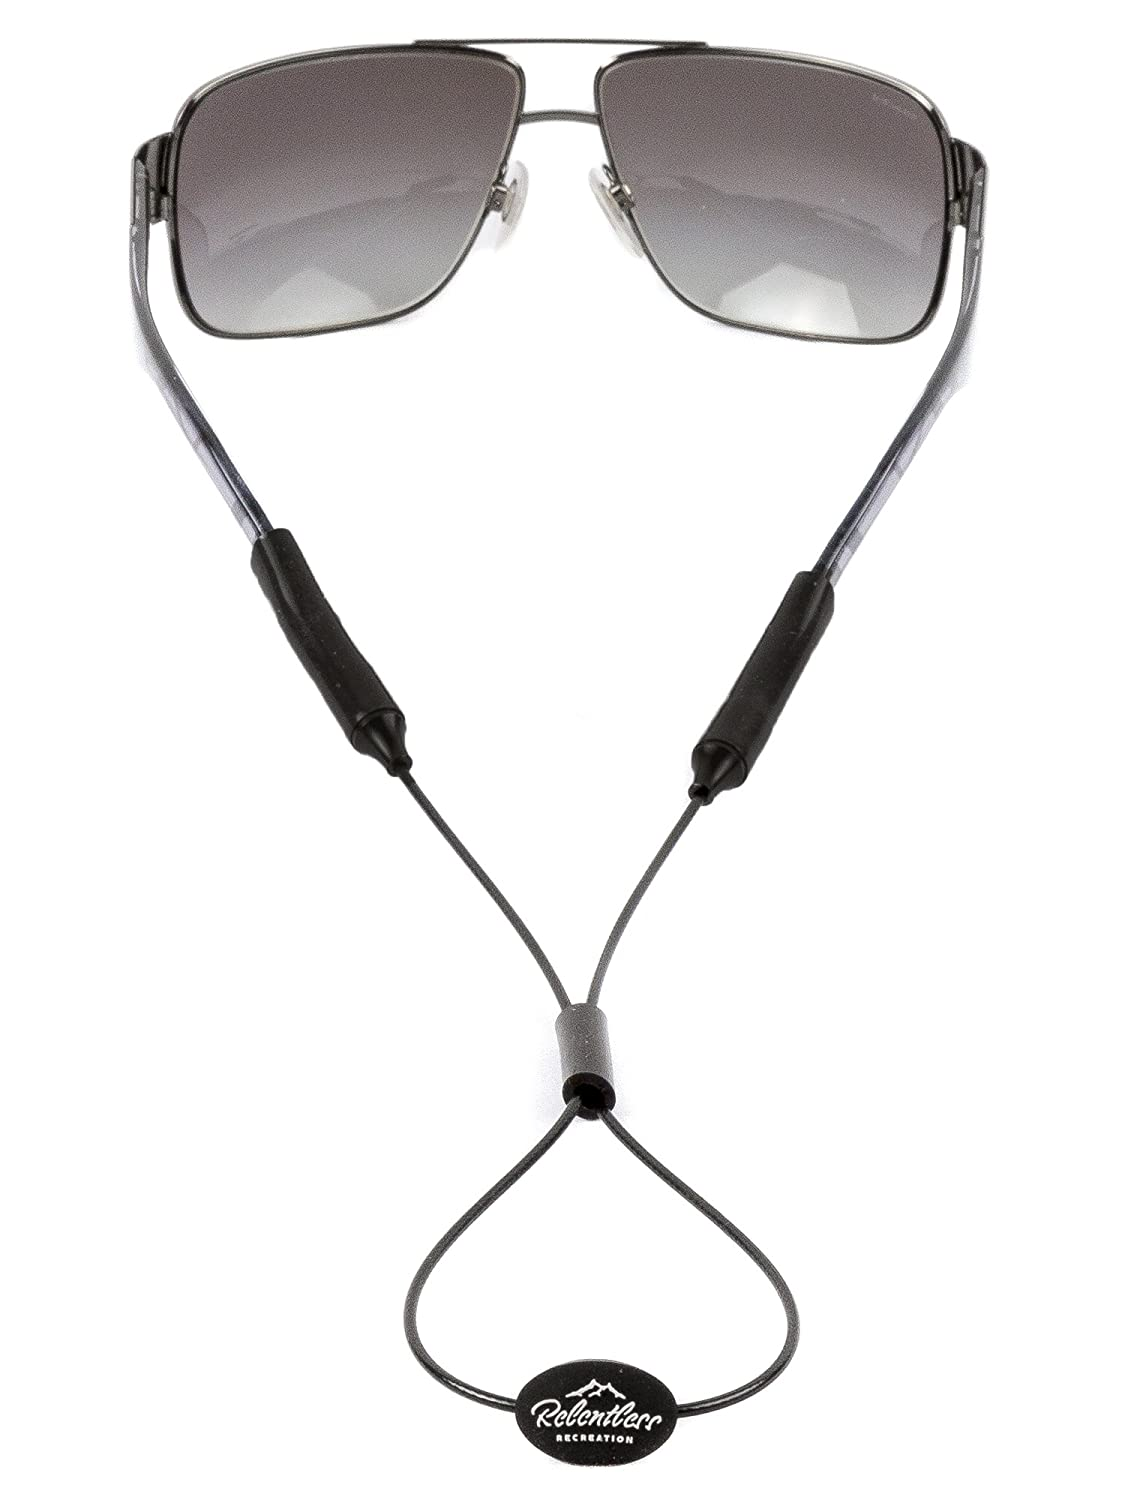 Rec-Strapz Sunglass Straps/Eyewear Retainers - Made in USA - Universal Fit Black - Adjustable